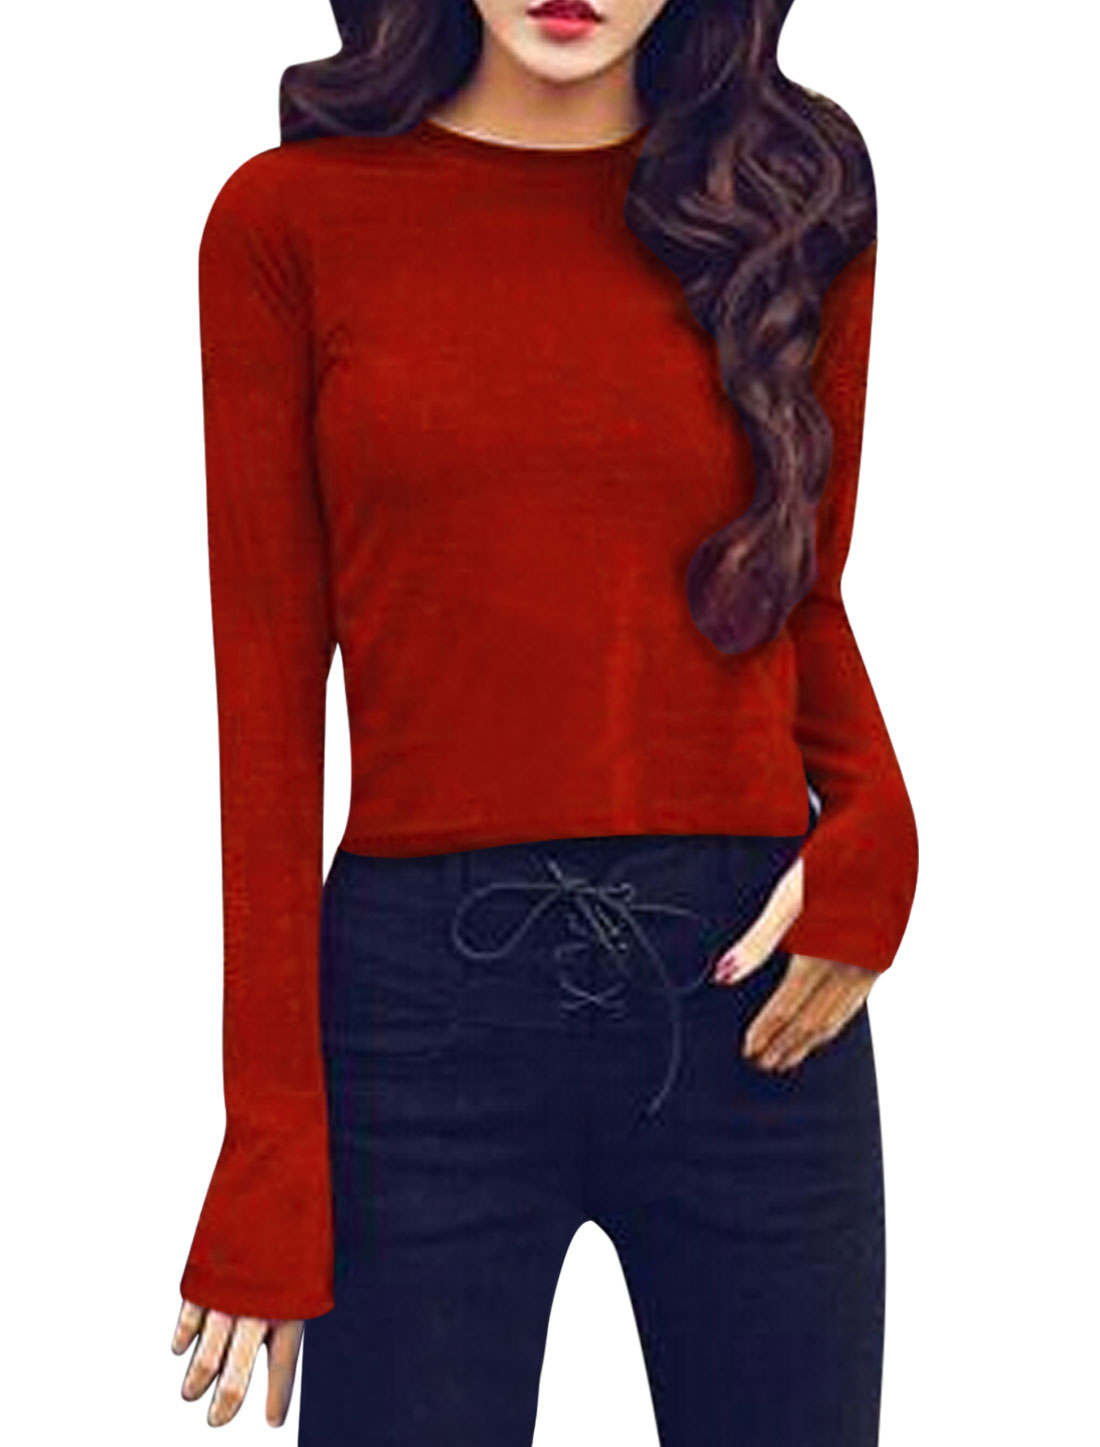 Women Crew Neck Long Sleeves Thumbhole Slim Fit Knit Shirt Red XS